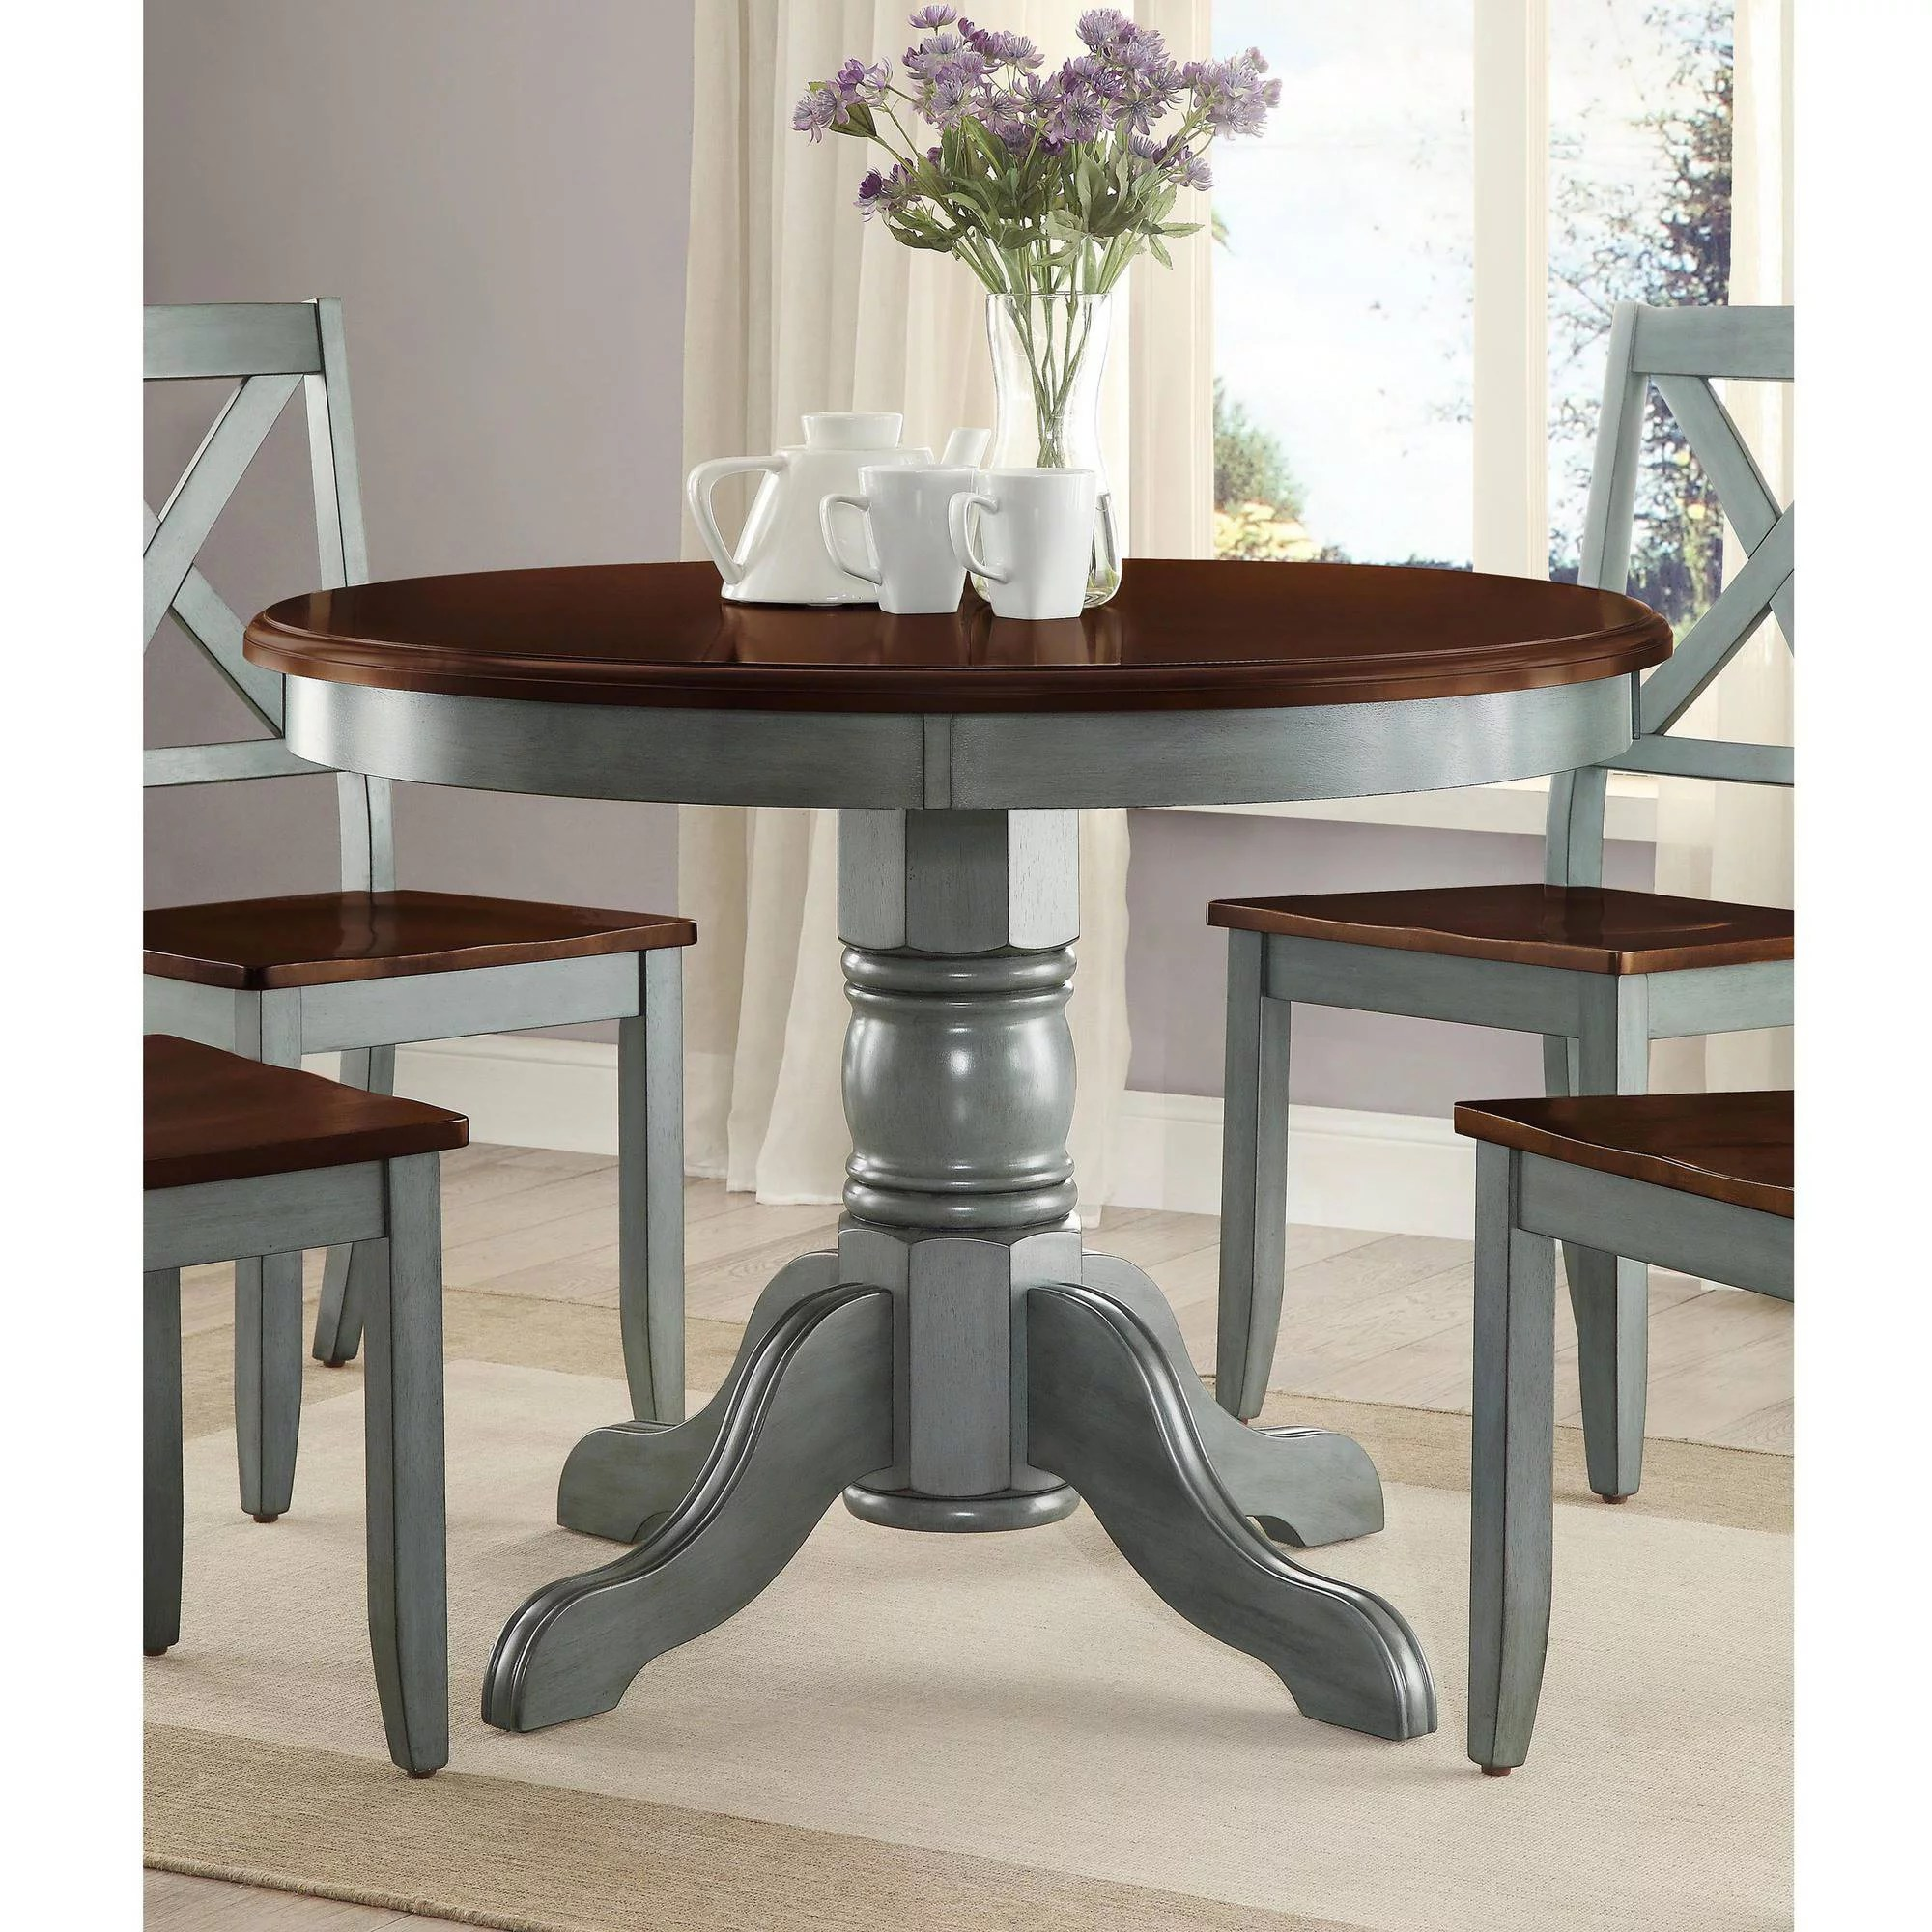 round kitchen table and chairs set leather reclining with footstool mainstays 5 piece glass metal dining 42 tabletop walmart com